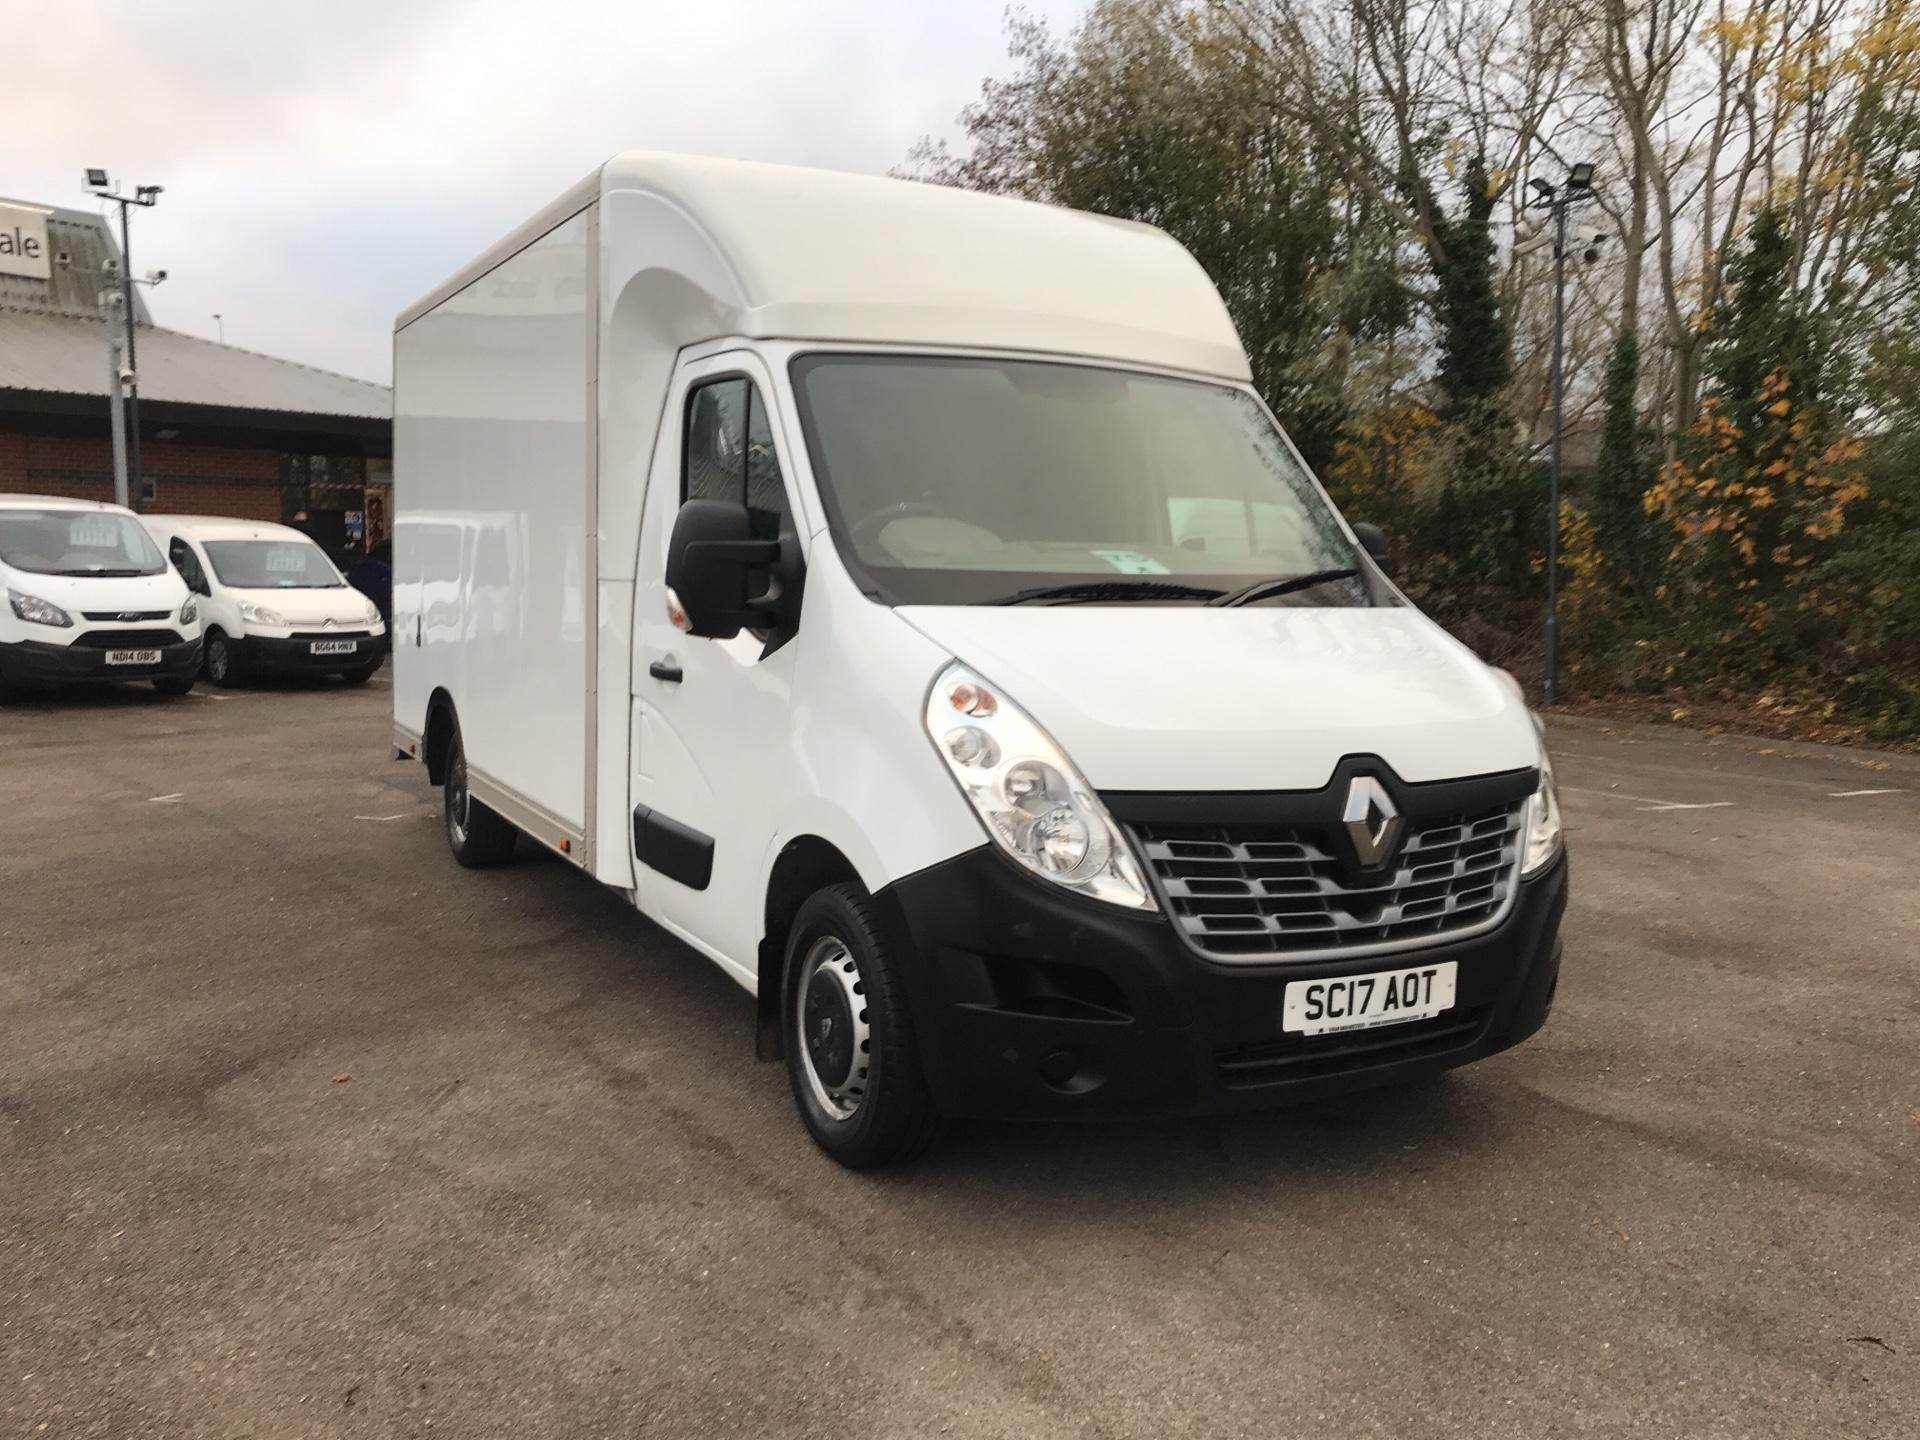 2017 Renault Master Ll35dci 130 Low Roof Luton Euro 6 (SC17AOT)